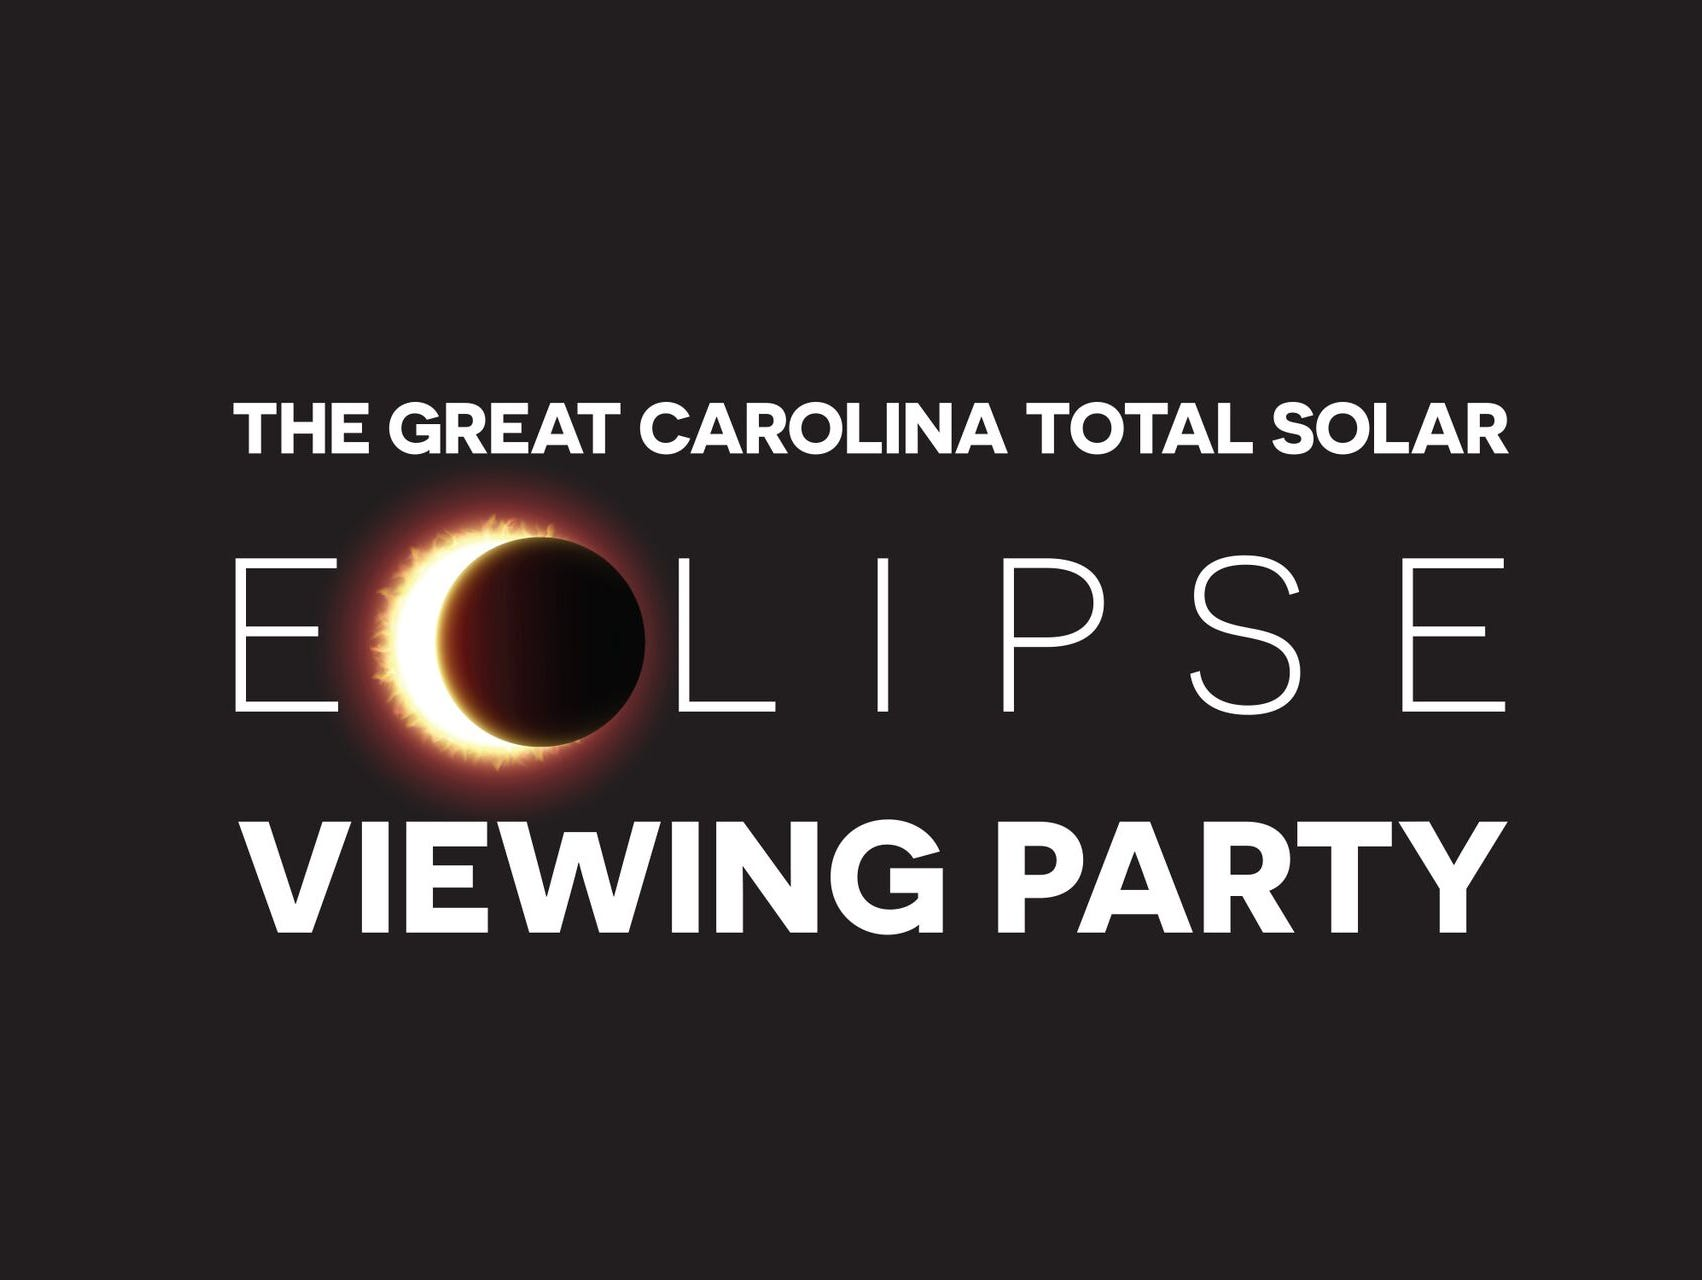 Get your tickets to The Great Carolina Total Solar Eclipse Viewing Party!